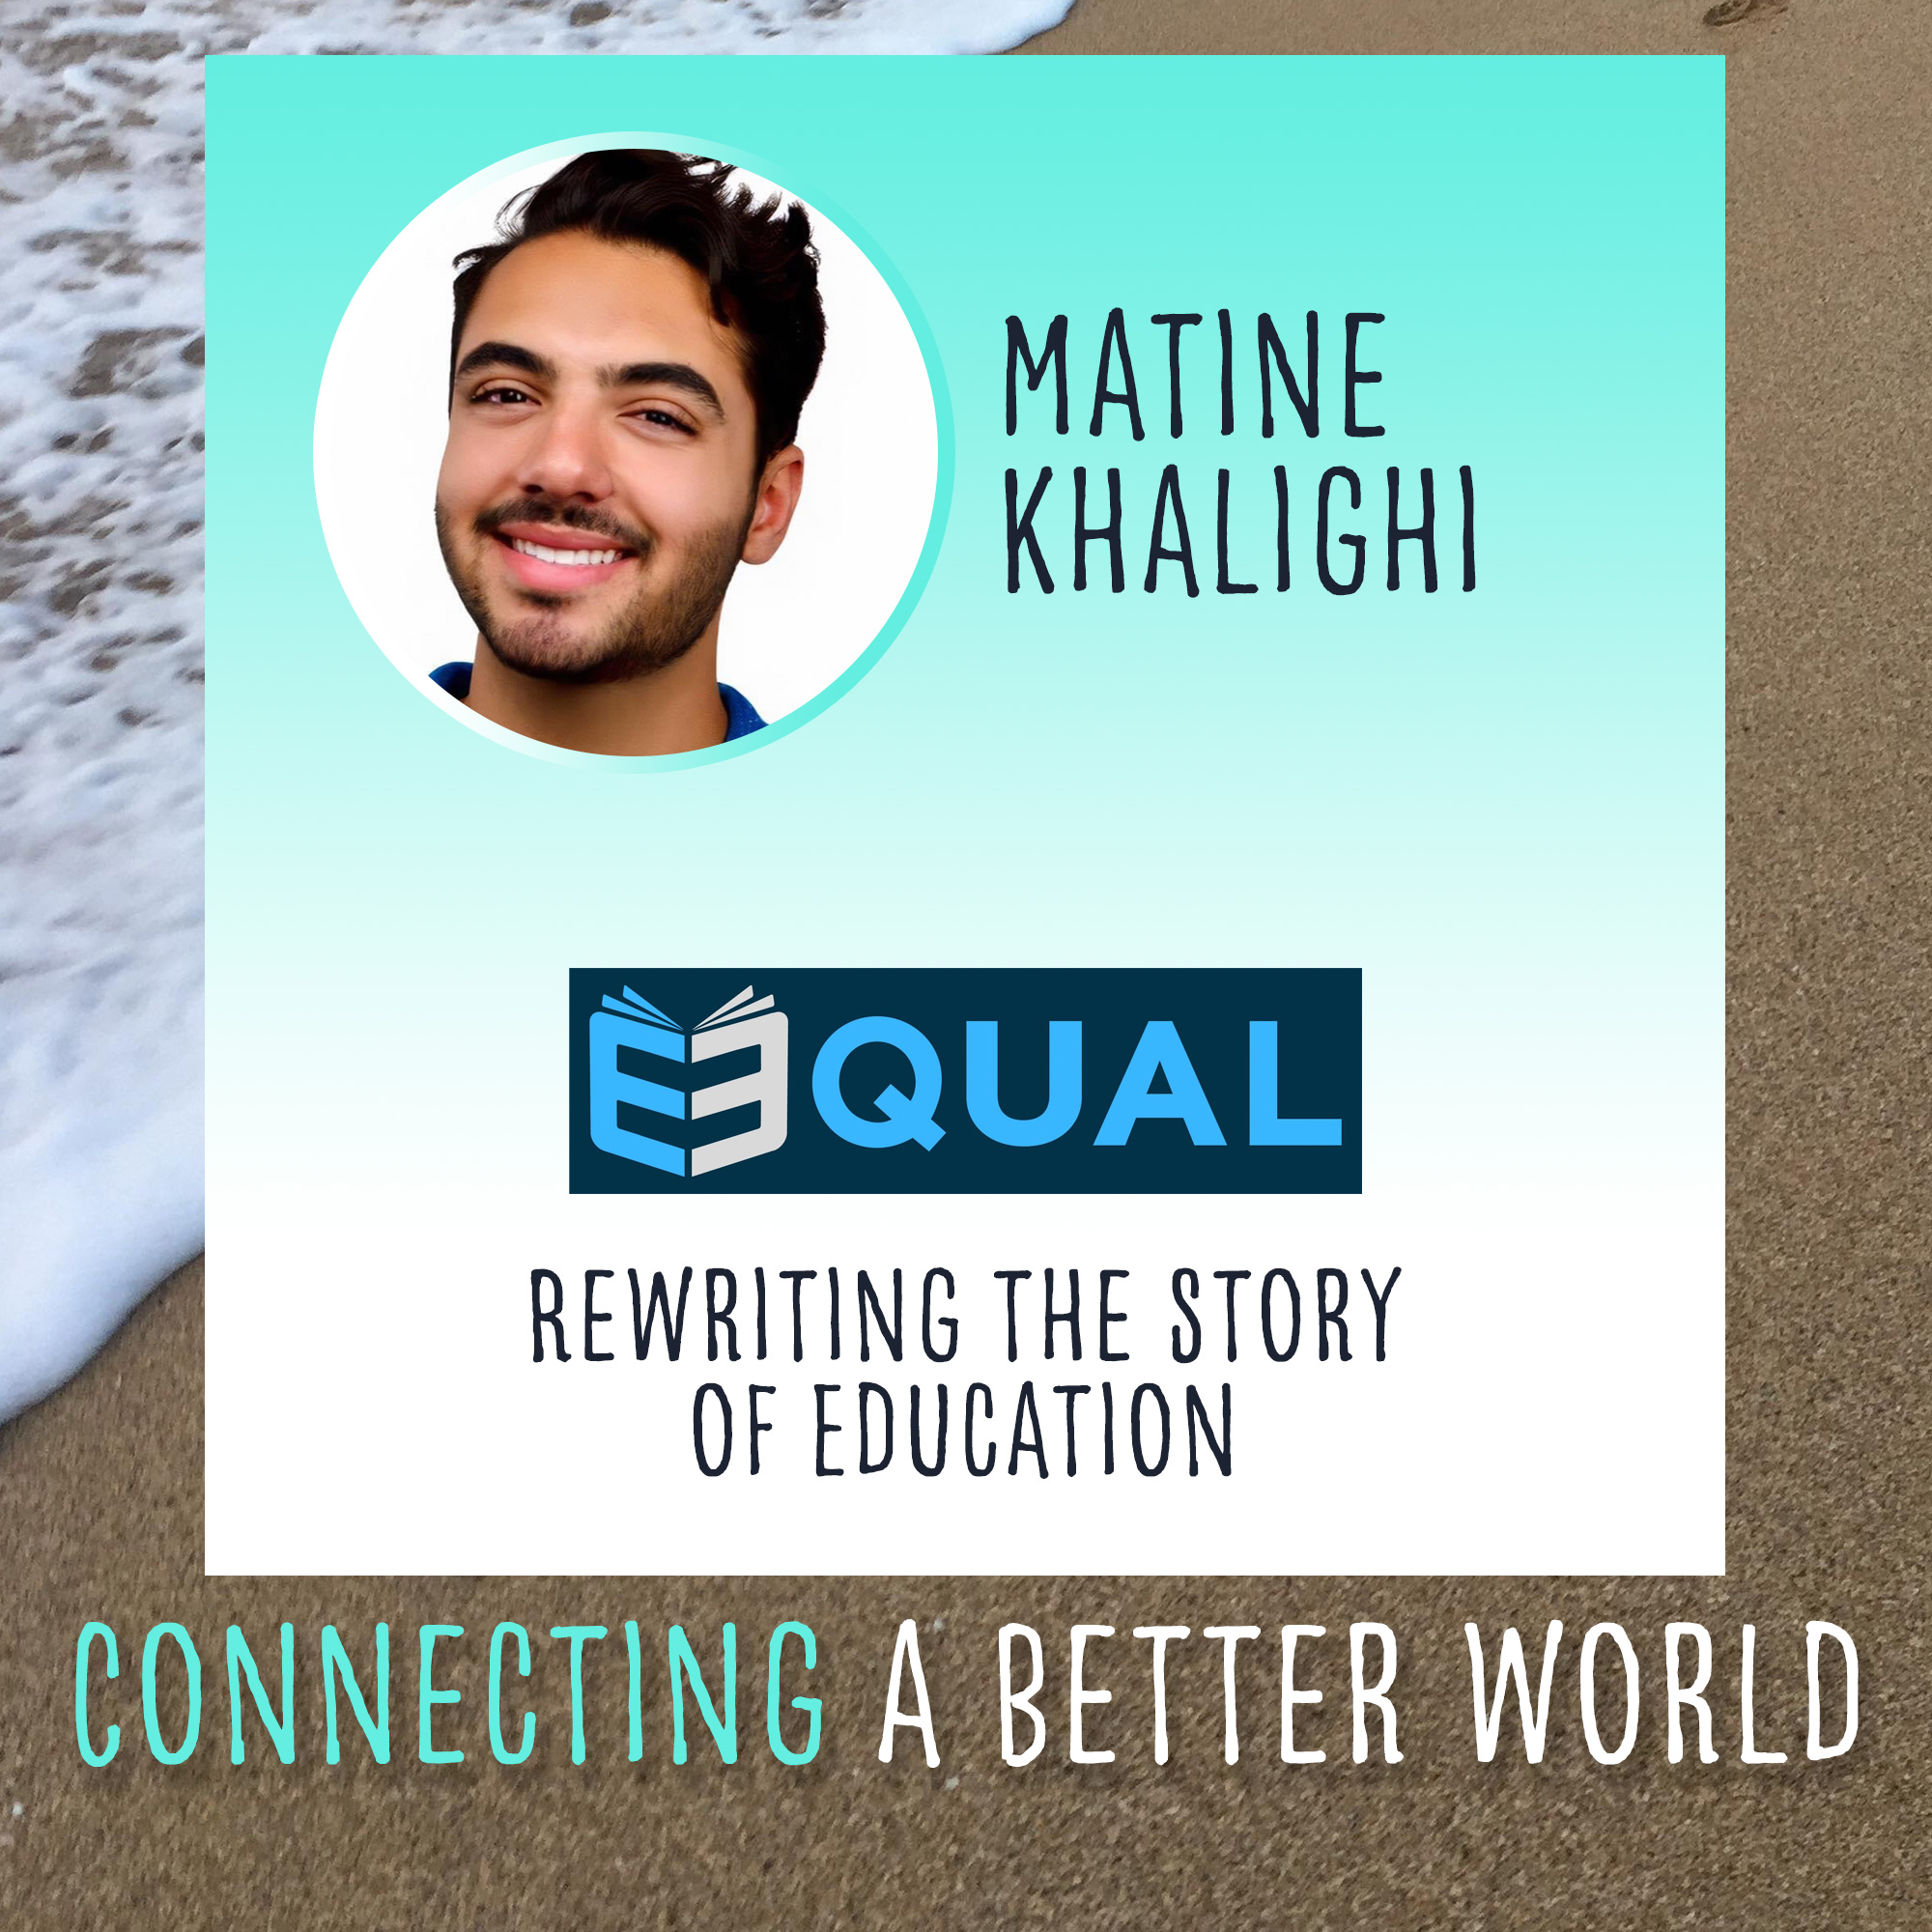 Rewriting the Story of Education